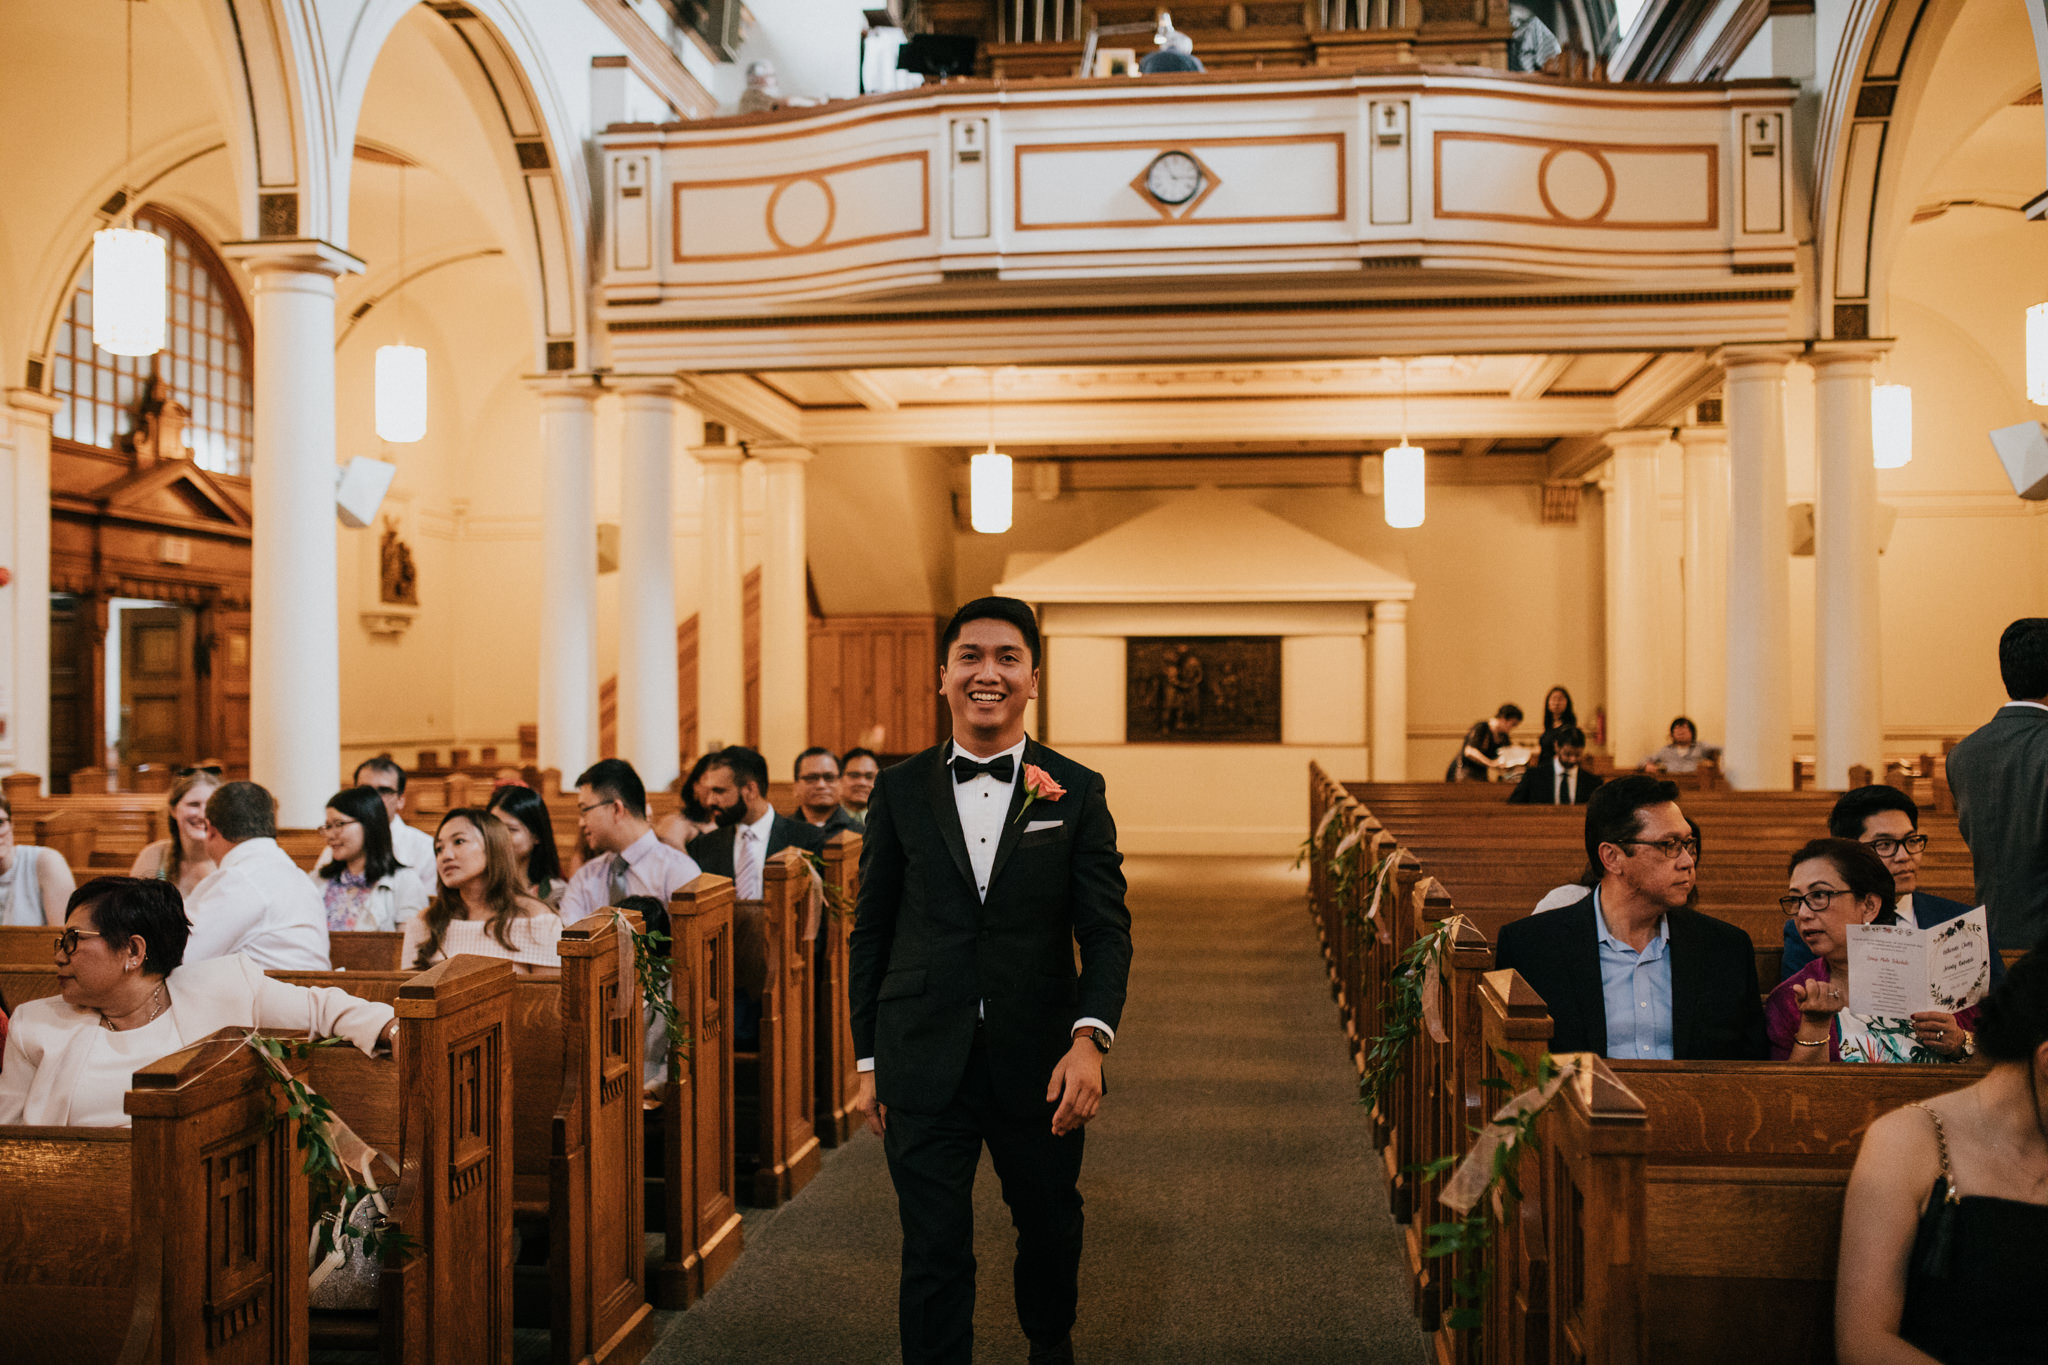 groom walking down the aisle in a church